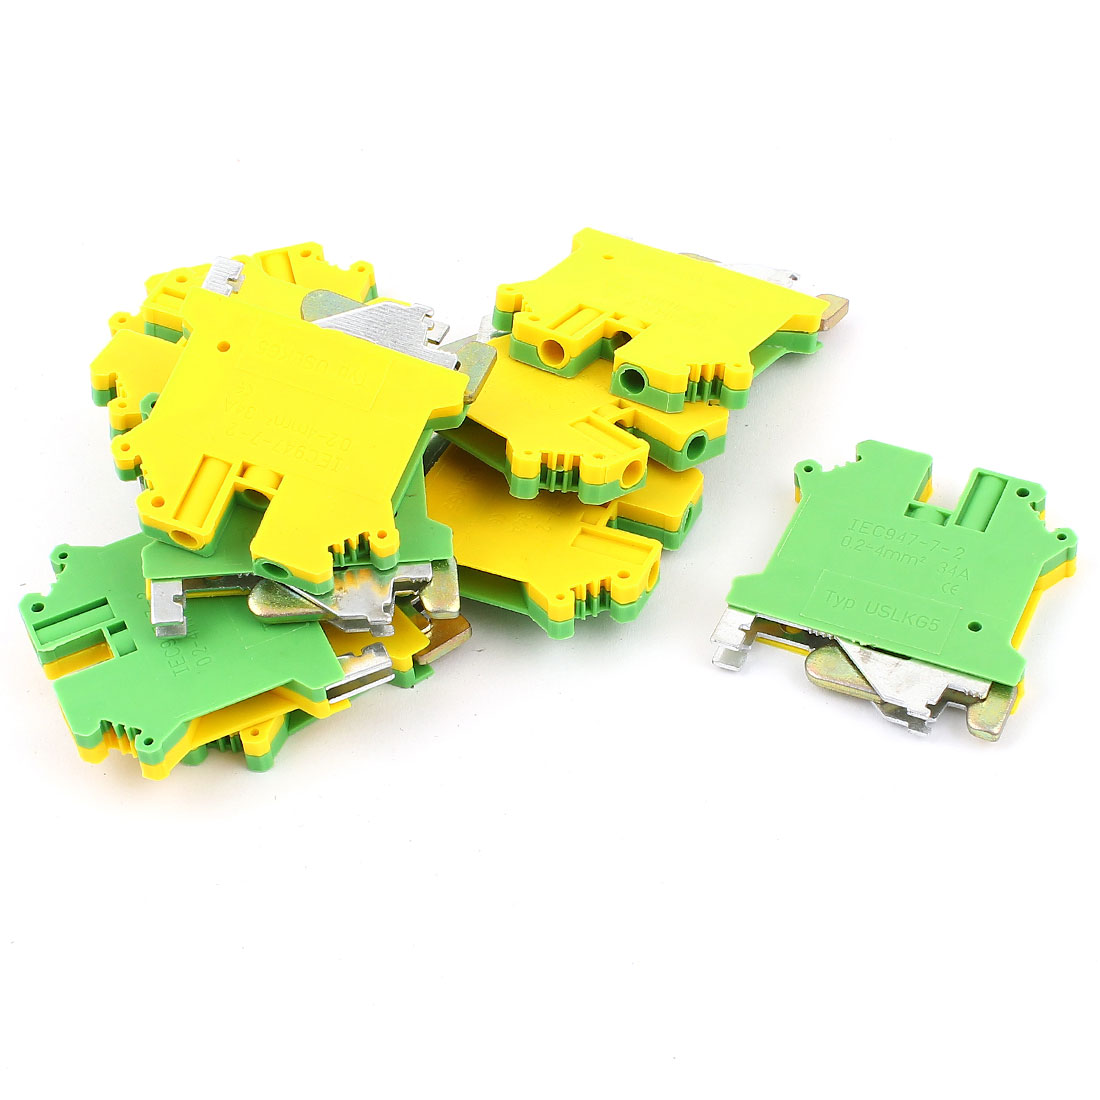 10 Pcs USLKG5 0.2-4mm2 Wire Rail Mount Grounding Terminal Block Yellow Green